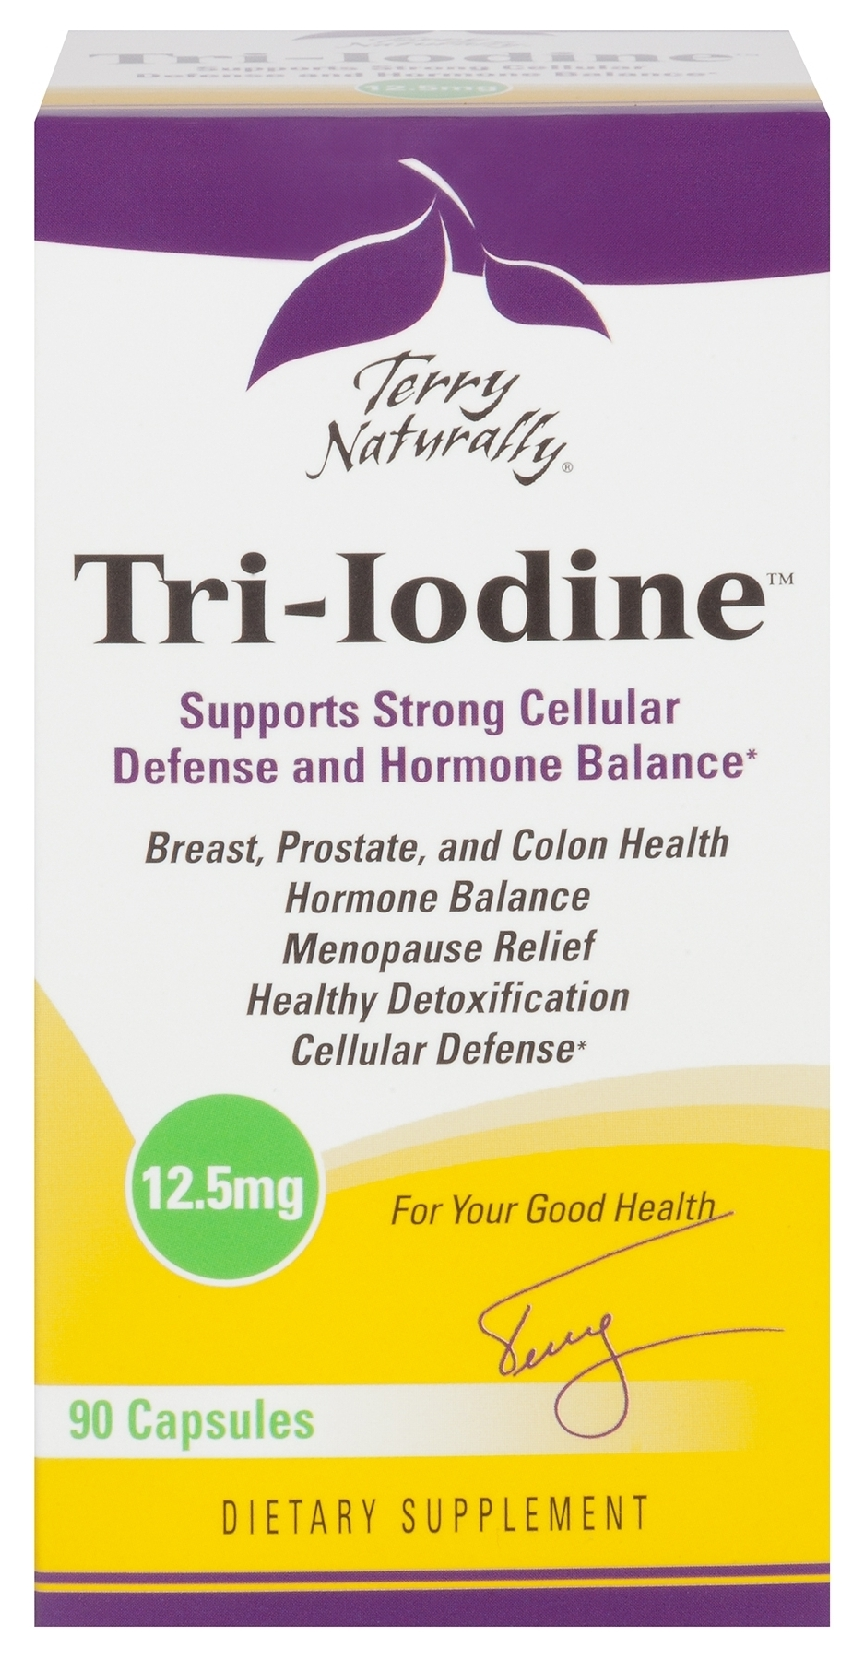 Terry Naturally Tri-Iodine 12.5 mg 90 caps by EuroPharma